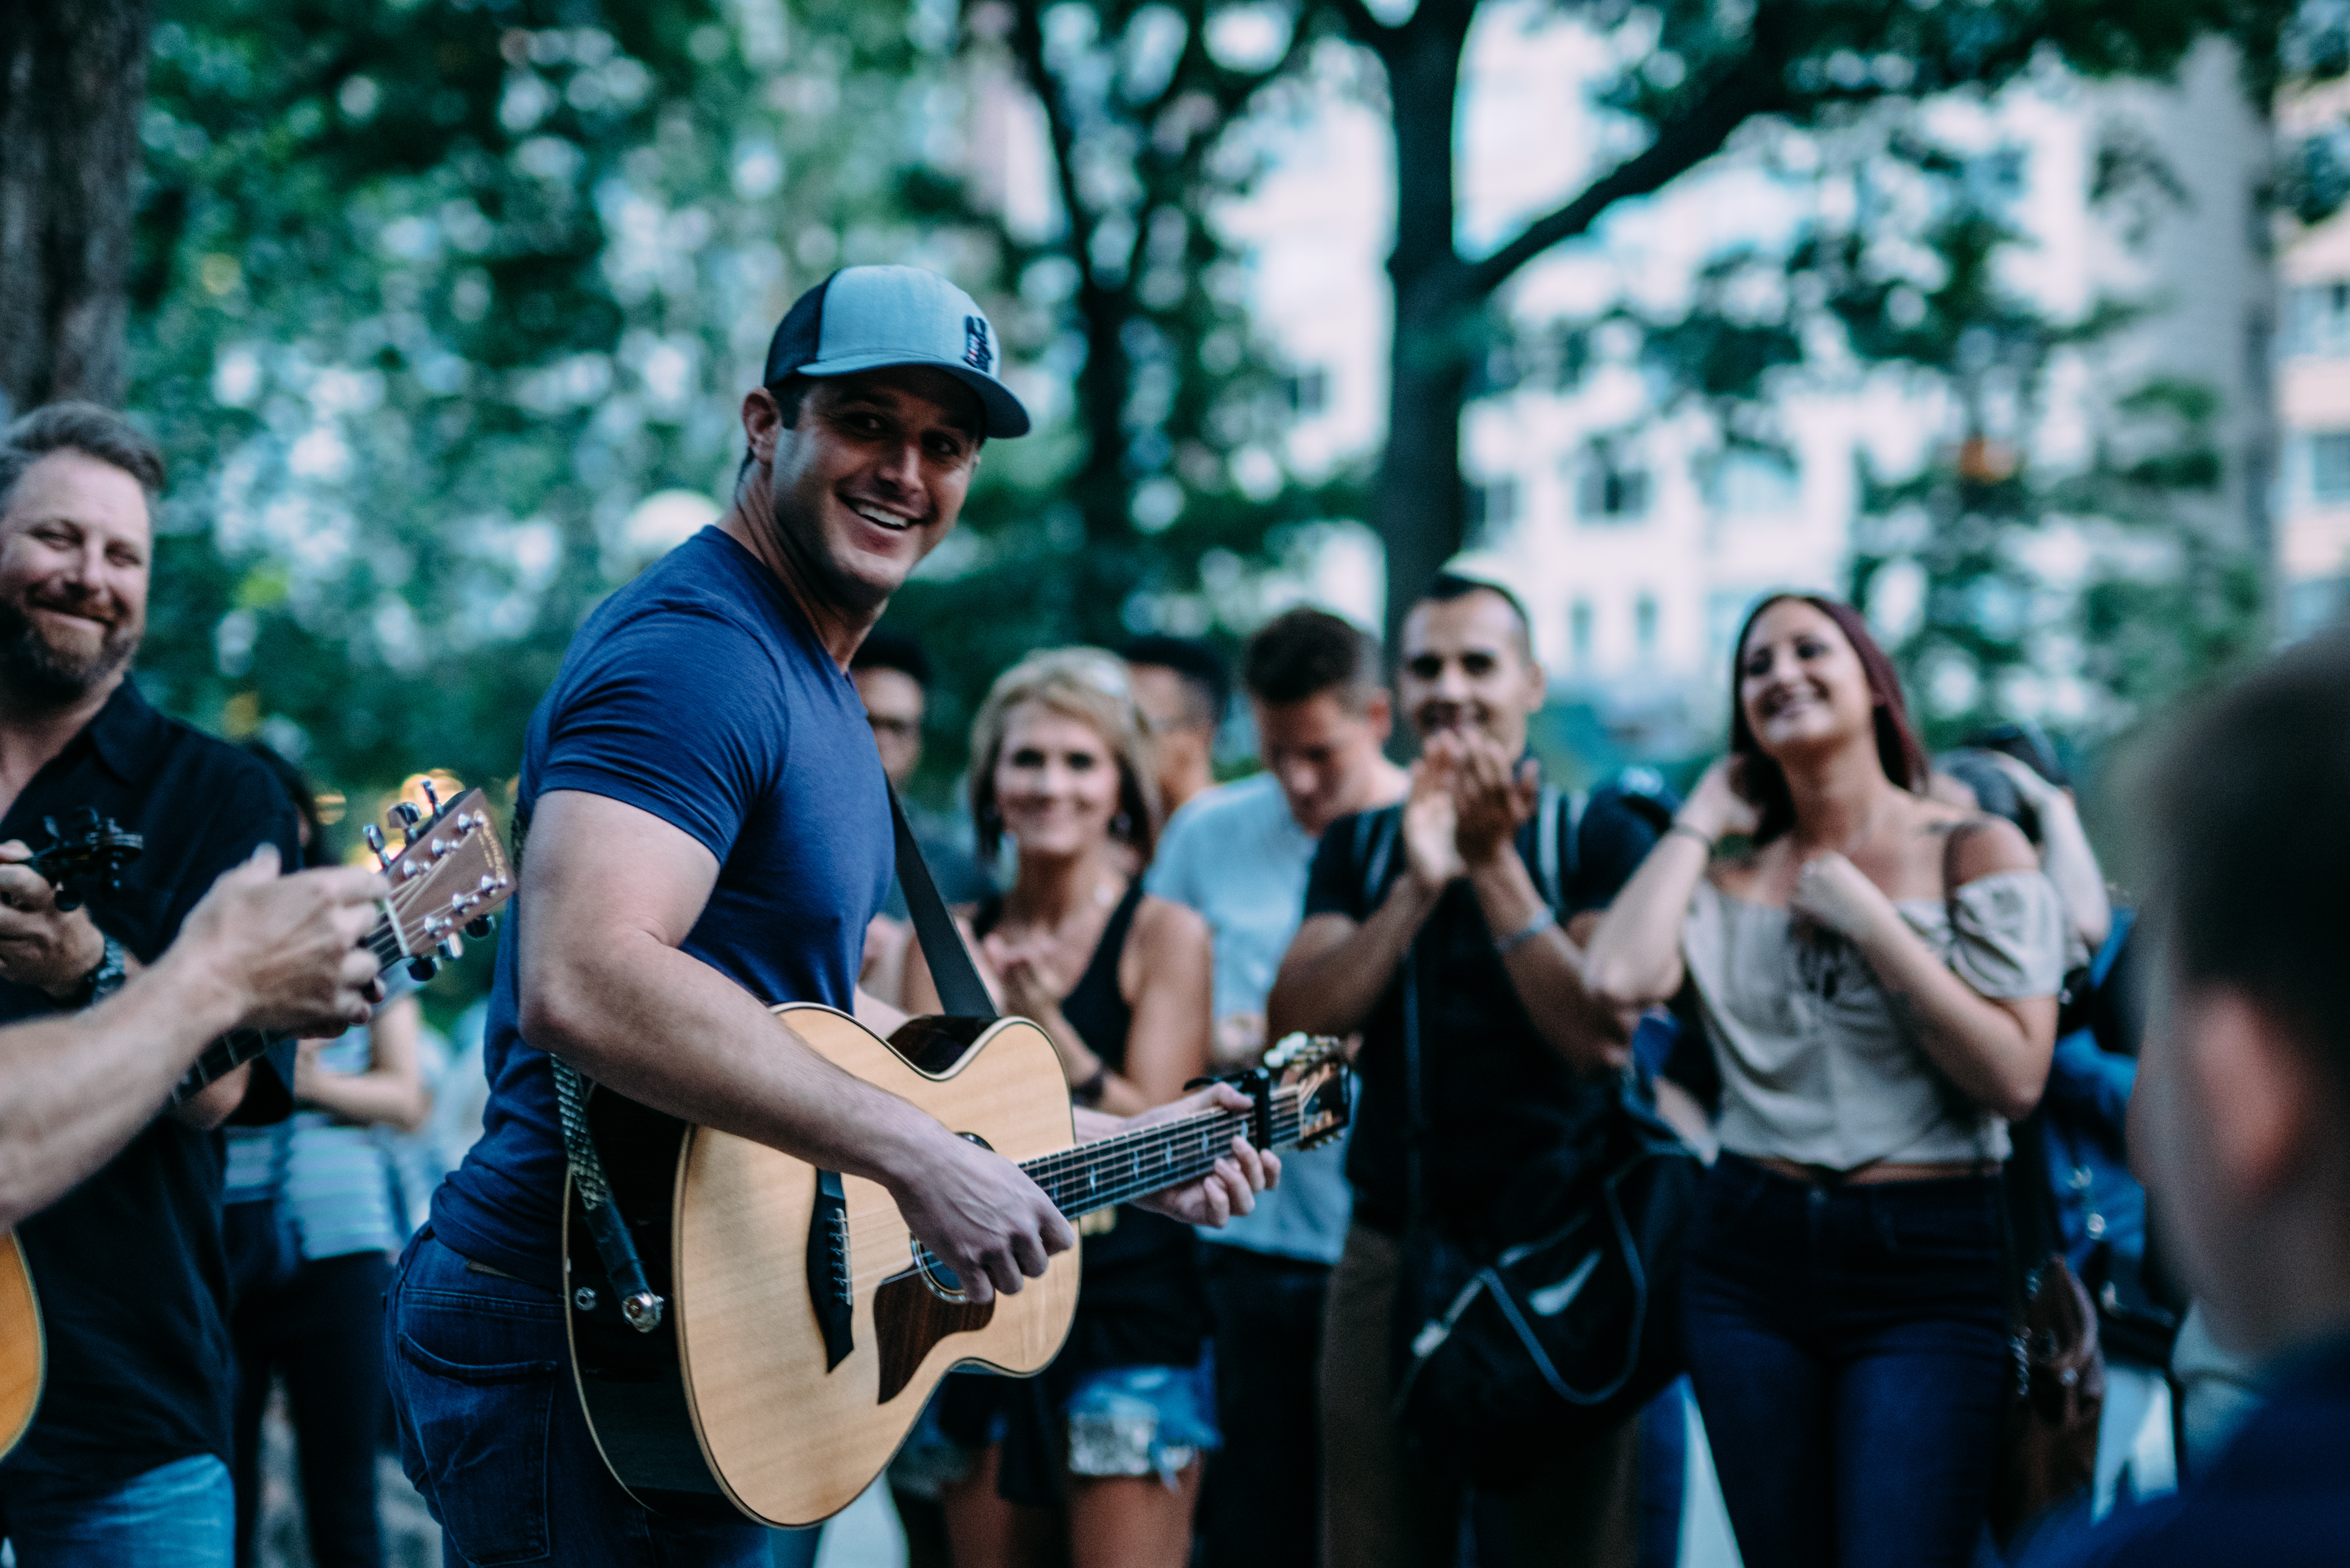 EASTON SURPRISES NYC FANS WITH POP-UP SHOW!